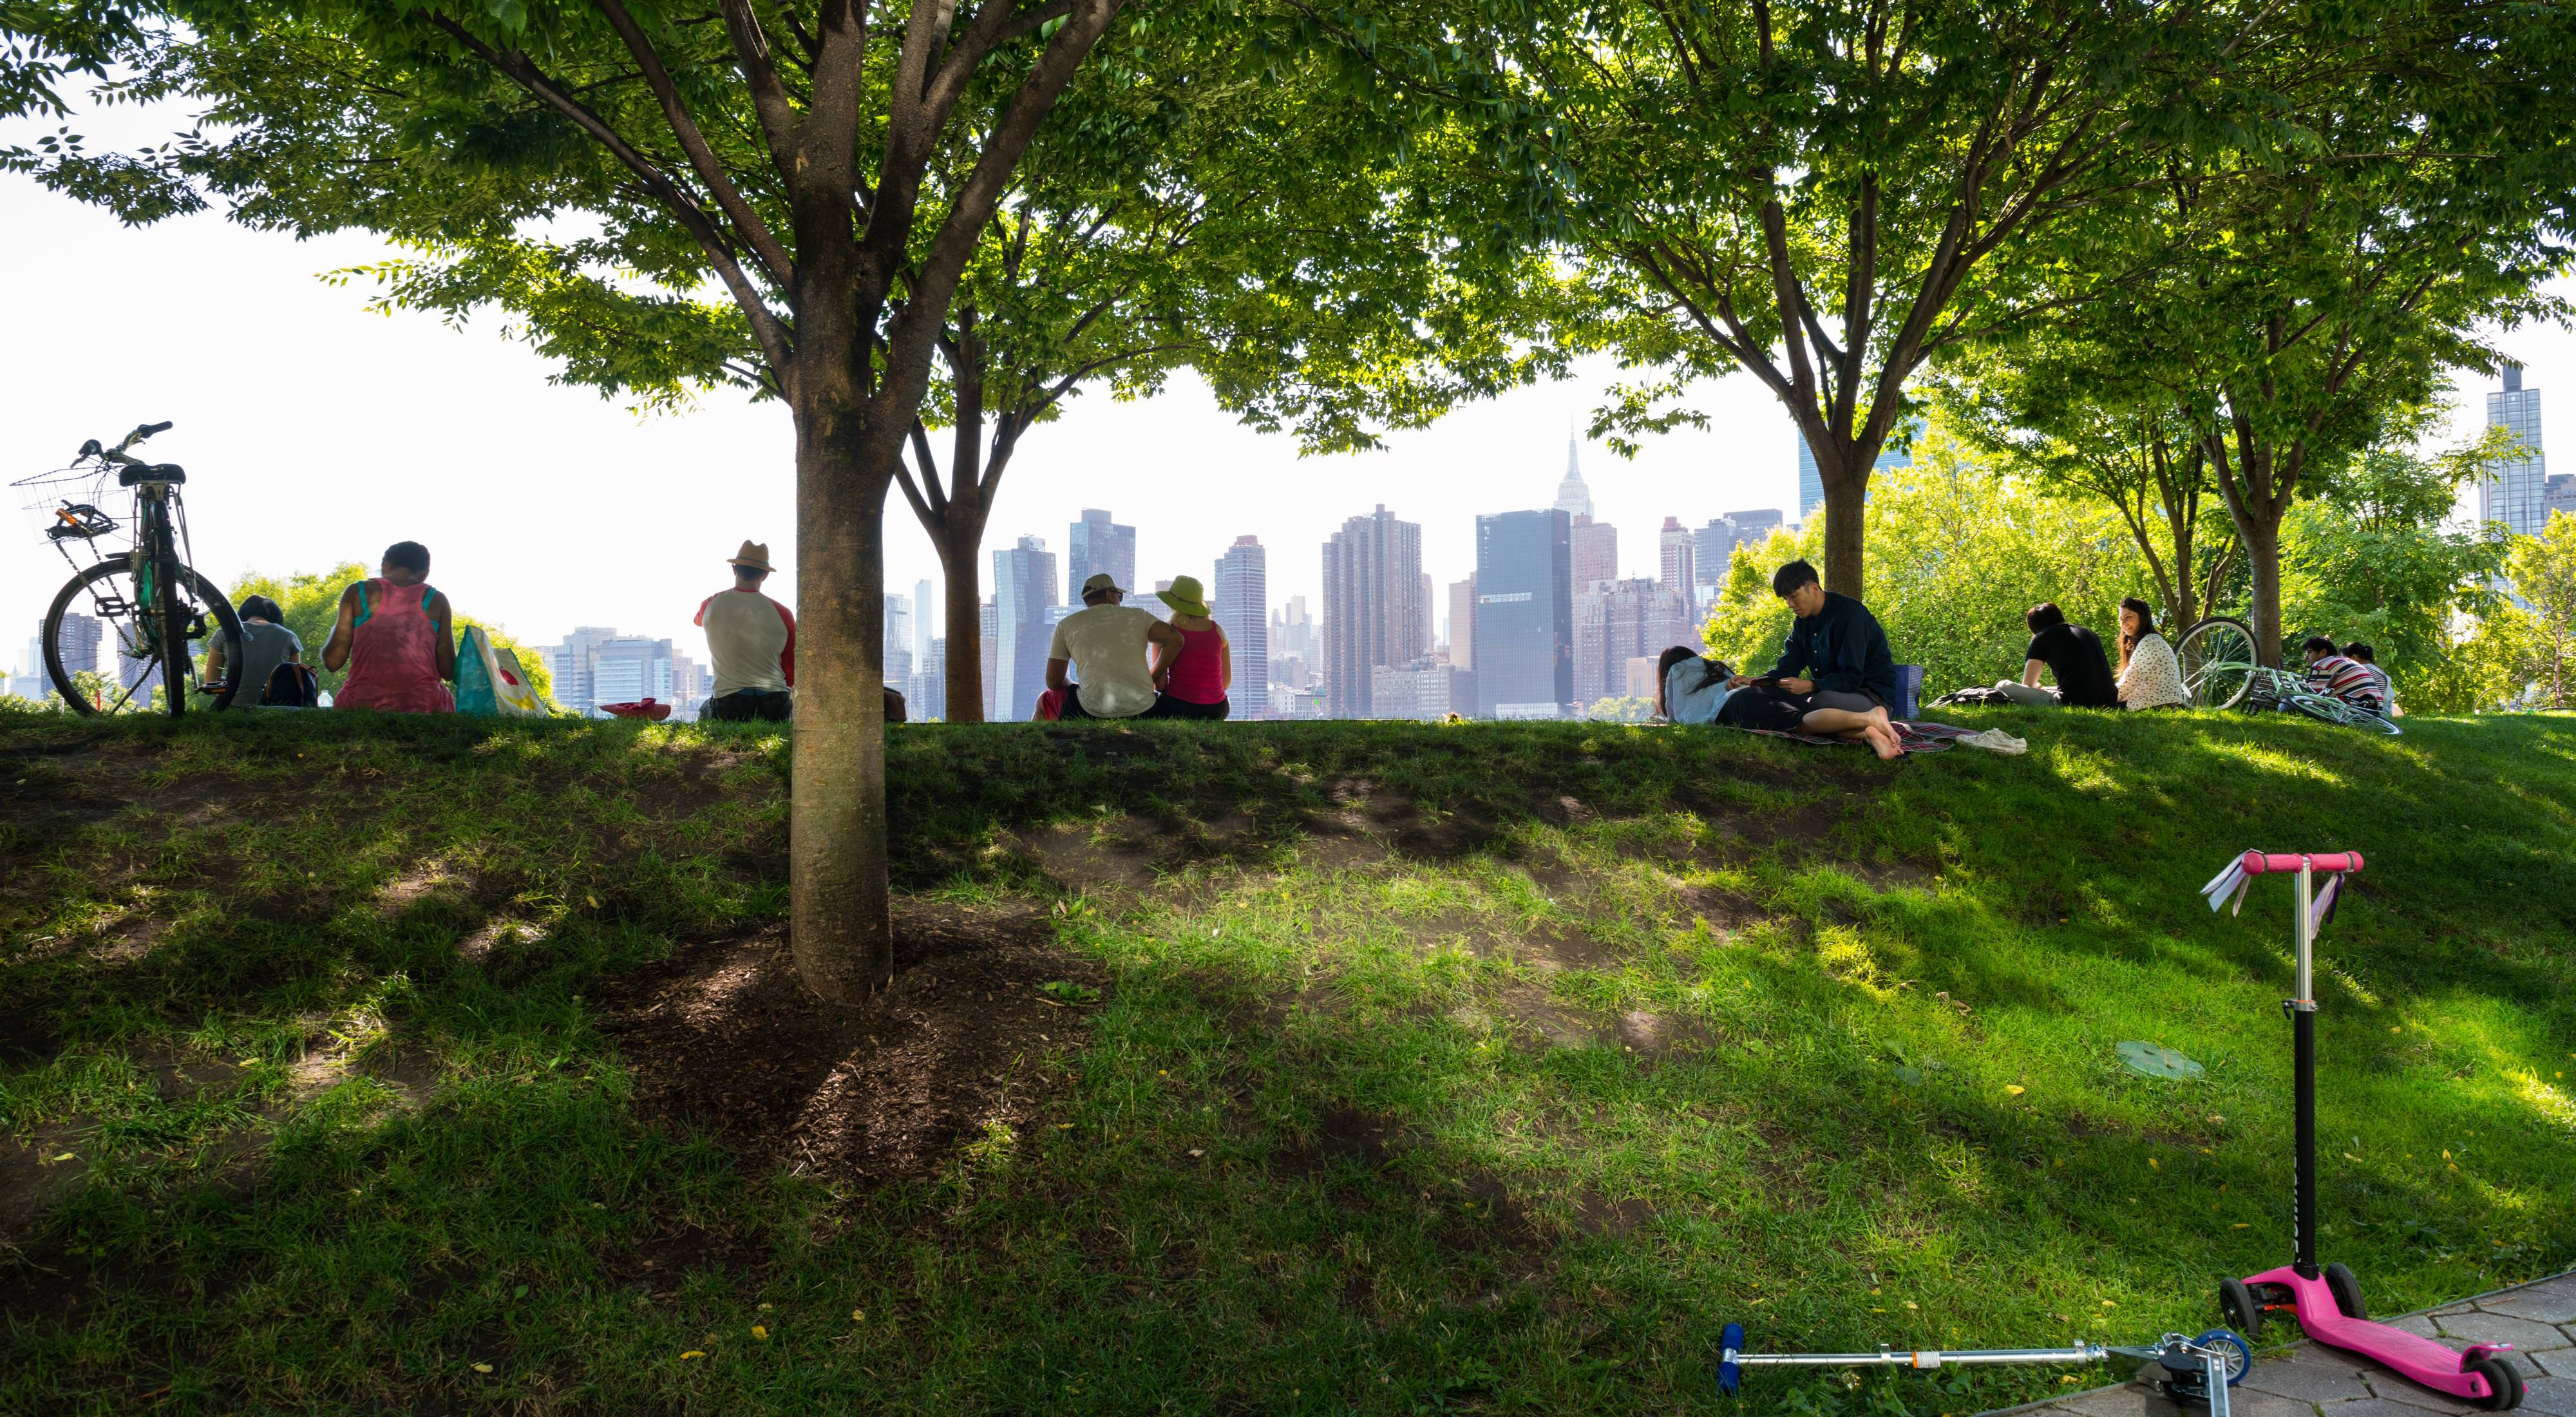 People sit under trees looking at the New York City skyline.